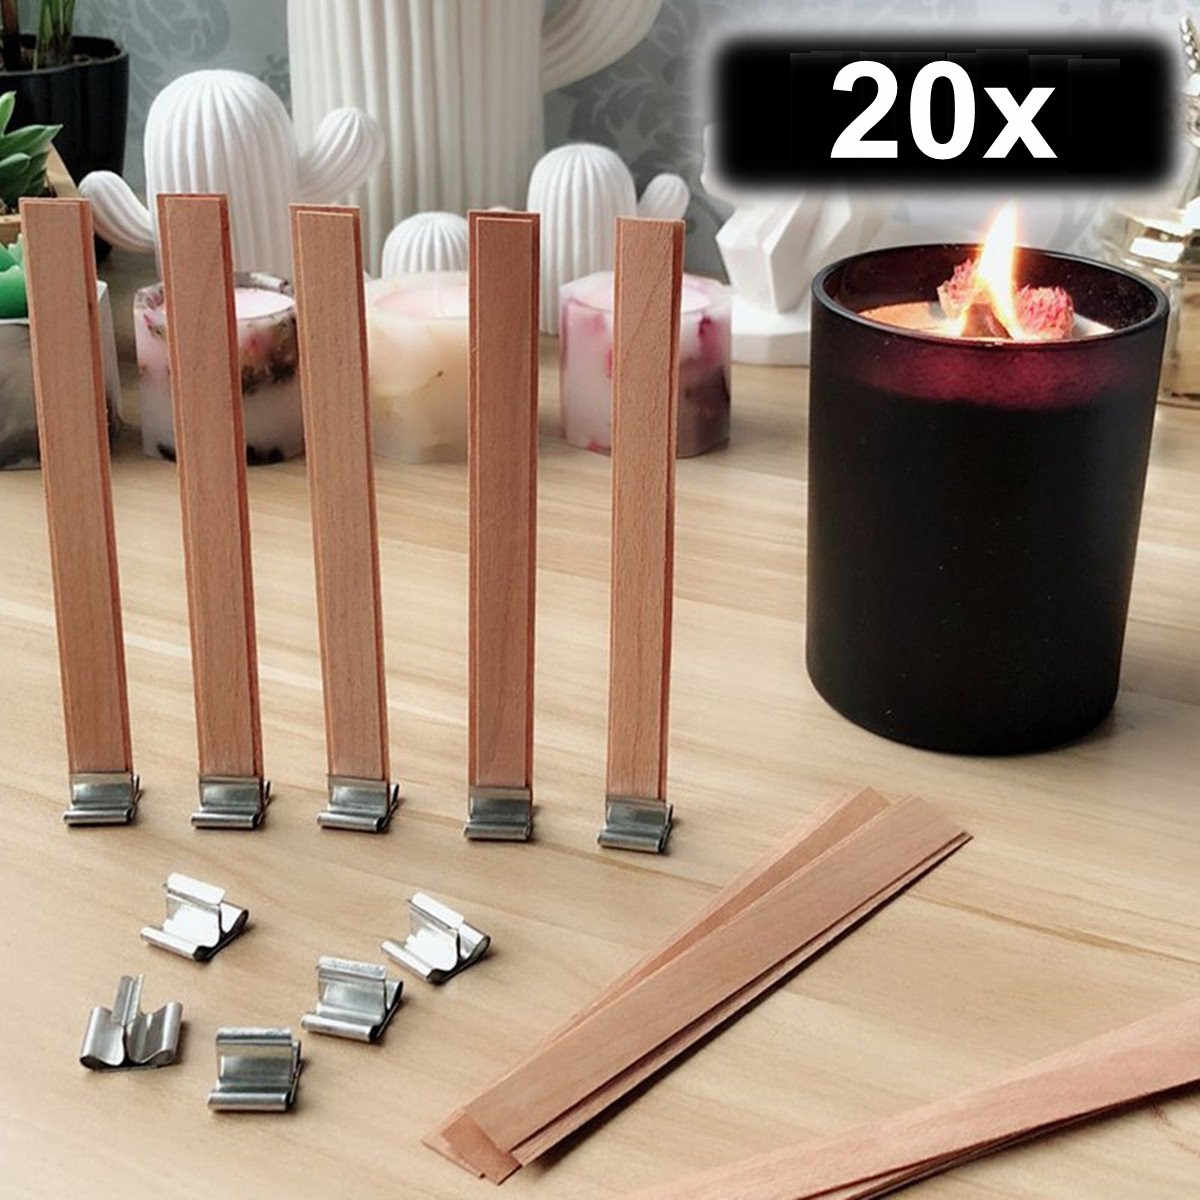 20Pcs 5 Size Handmade Candle Wood Wick with Sustainer Tab DIY Candle Making Supplies Wax Wick Core 20 Fixing Base For Wedding